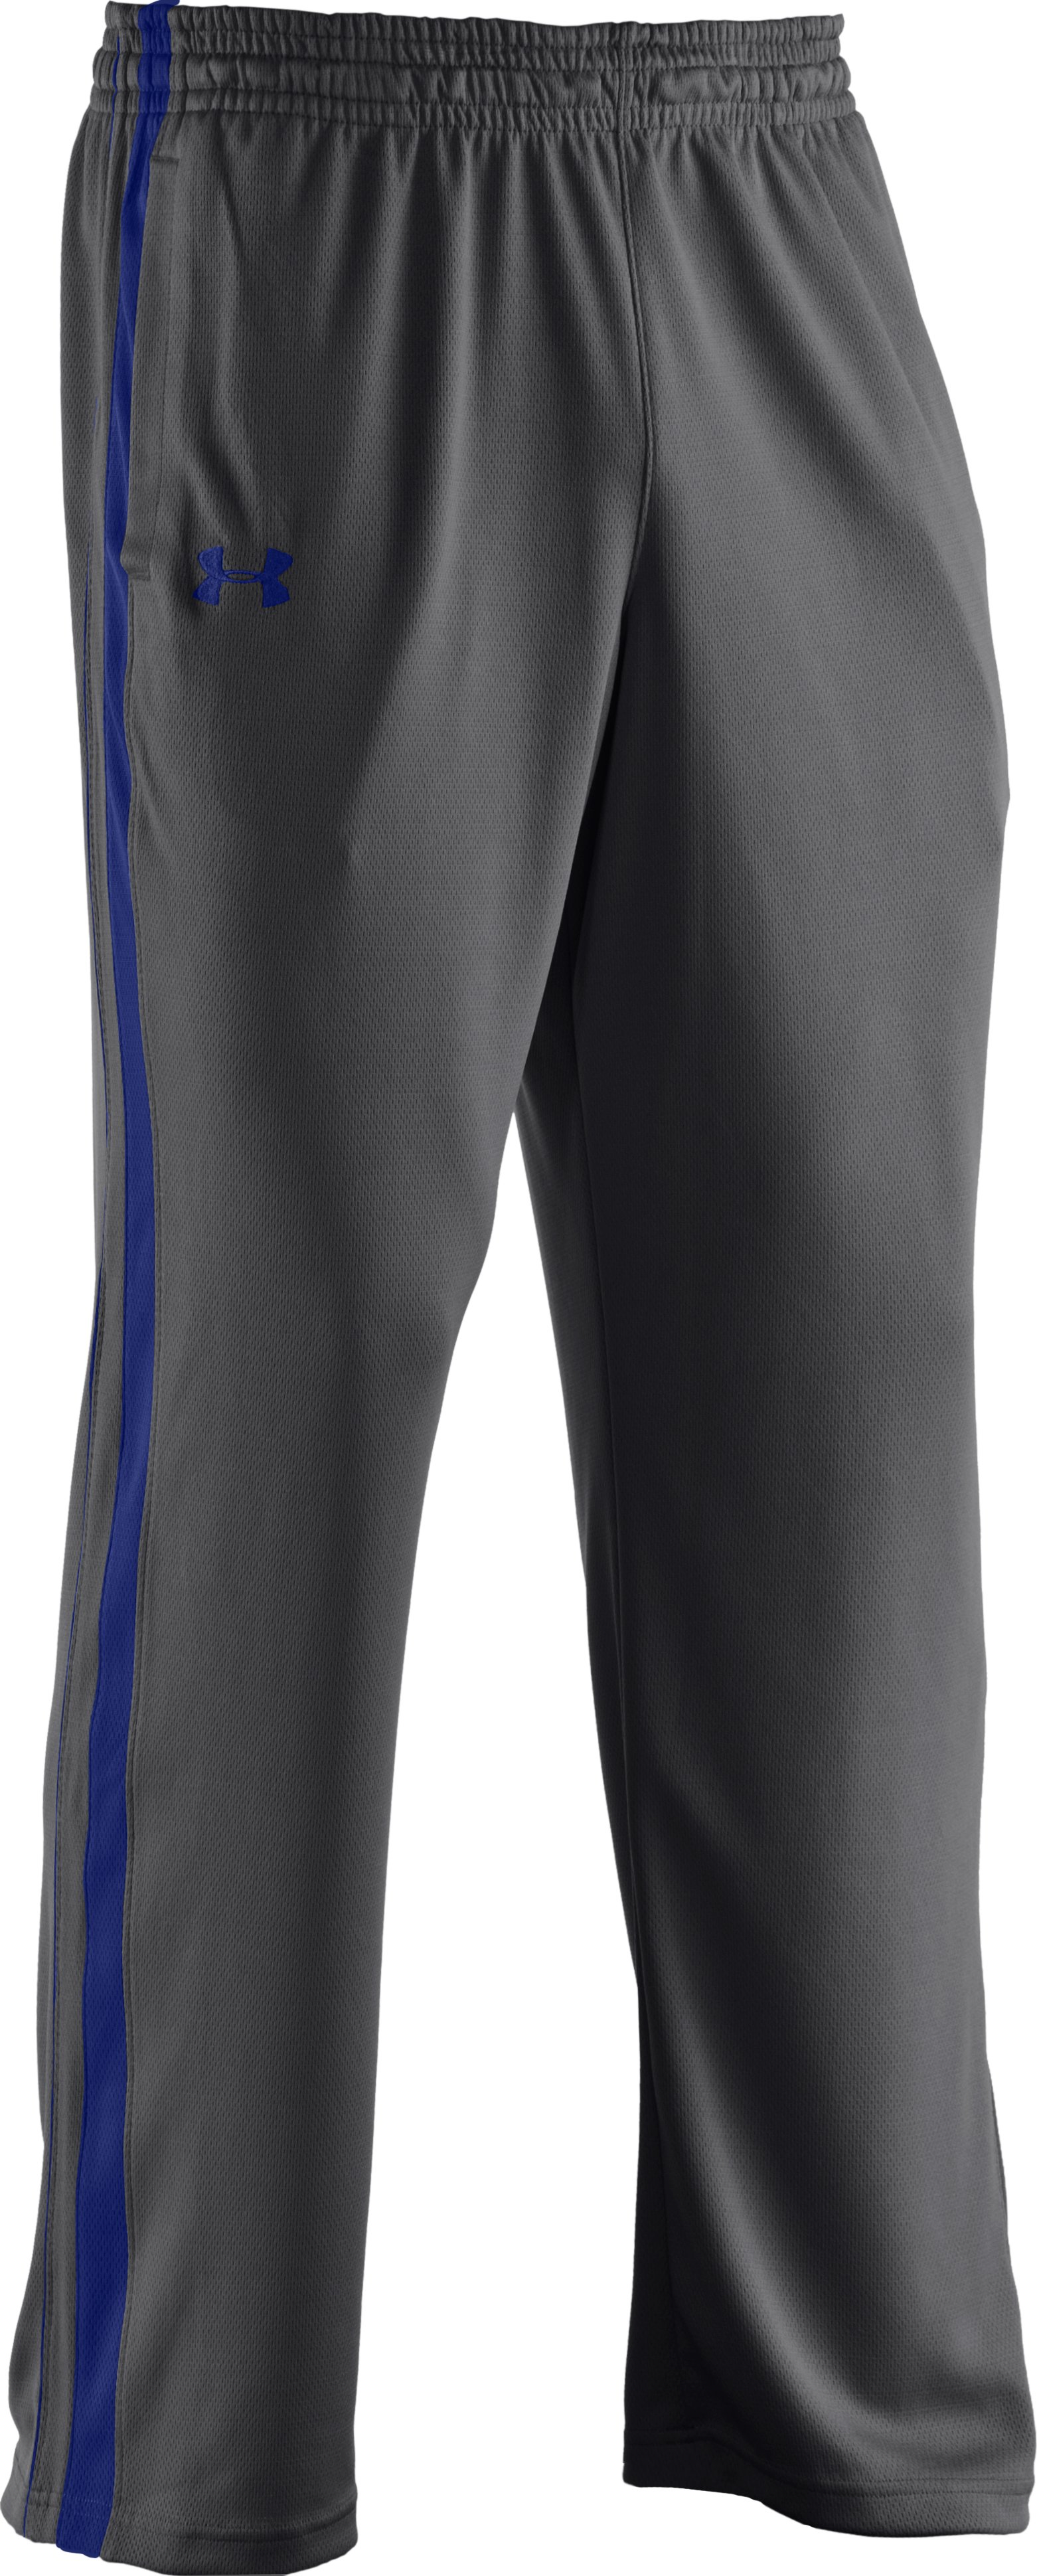 Men's UA Flex Colorblock Pants, Graphite